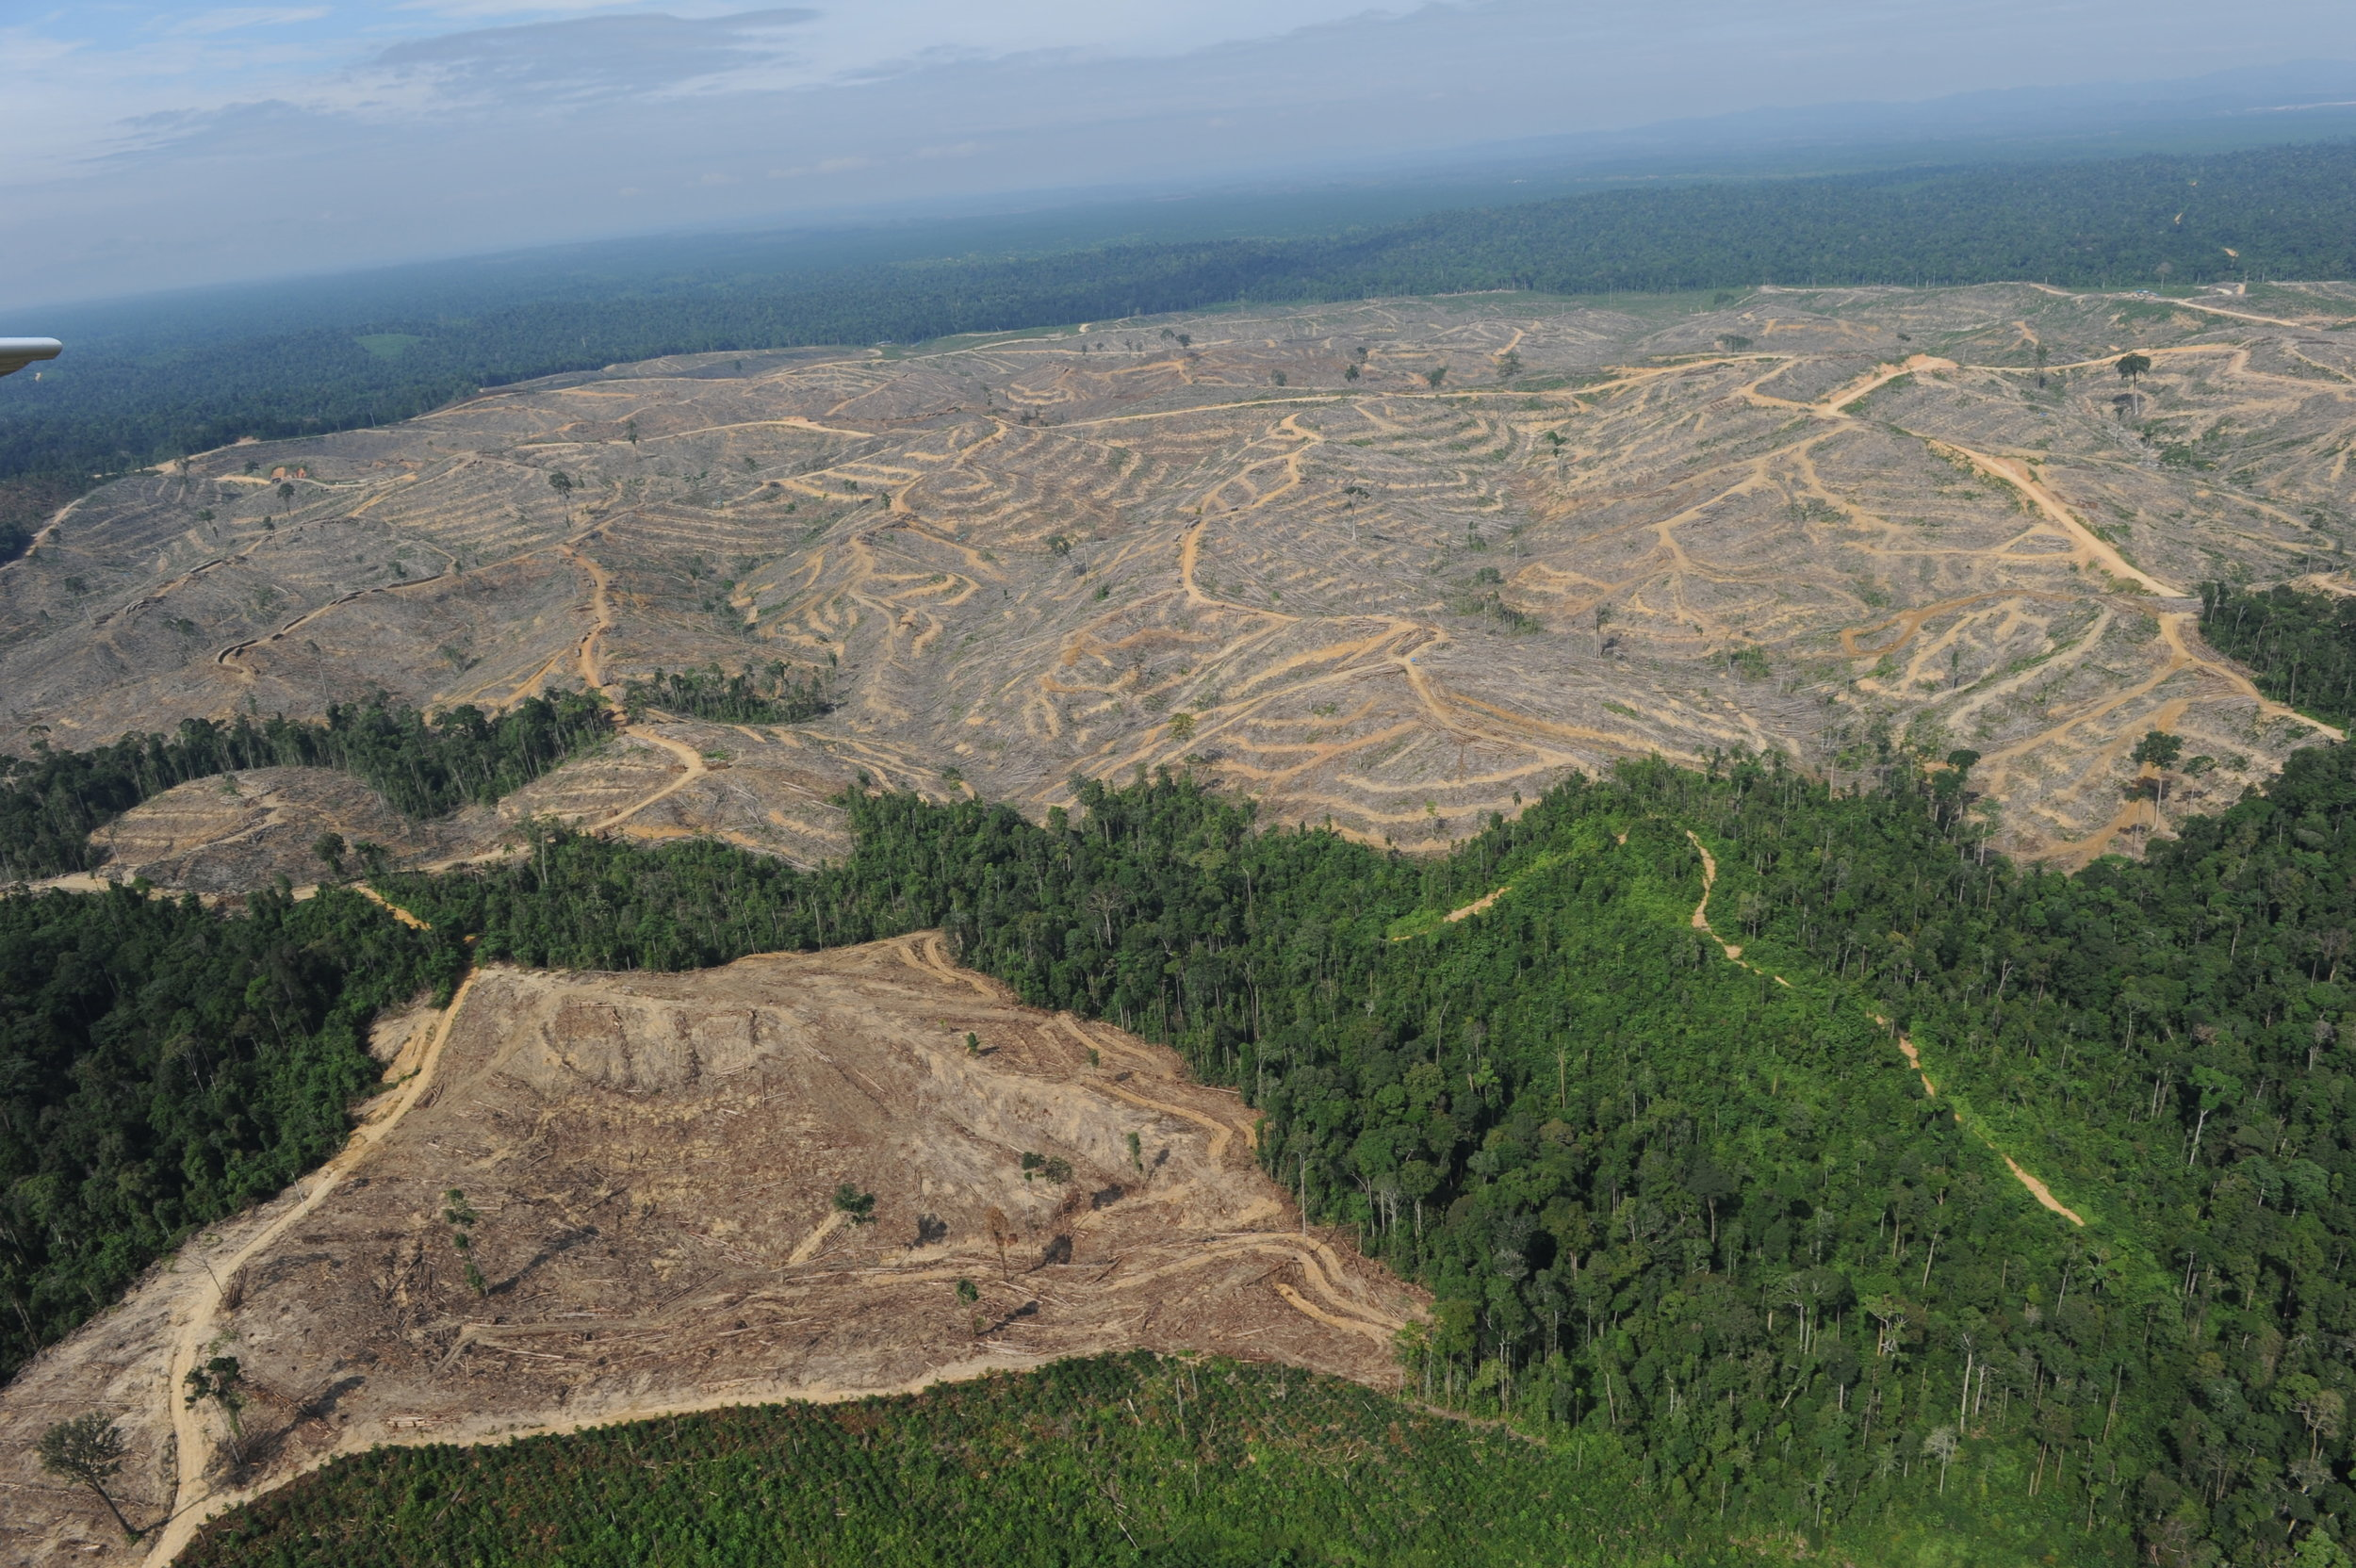 IN THE PAST 30 YEARS, OVER 50% OF THE EARTH'S ORIGINAL FOREST COVER HAS BEEN DESTROYED FOR HUMAN PRODUCTS.